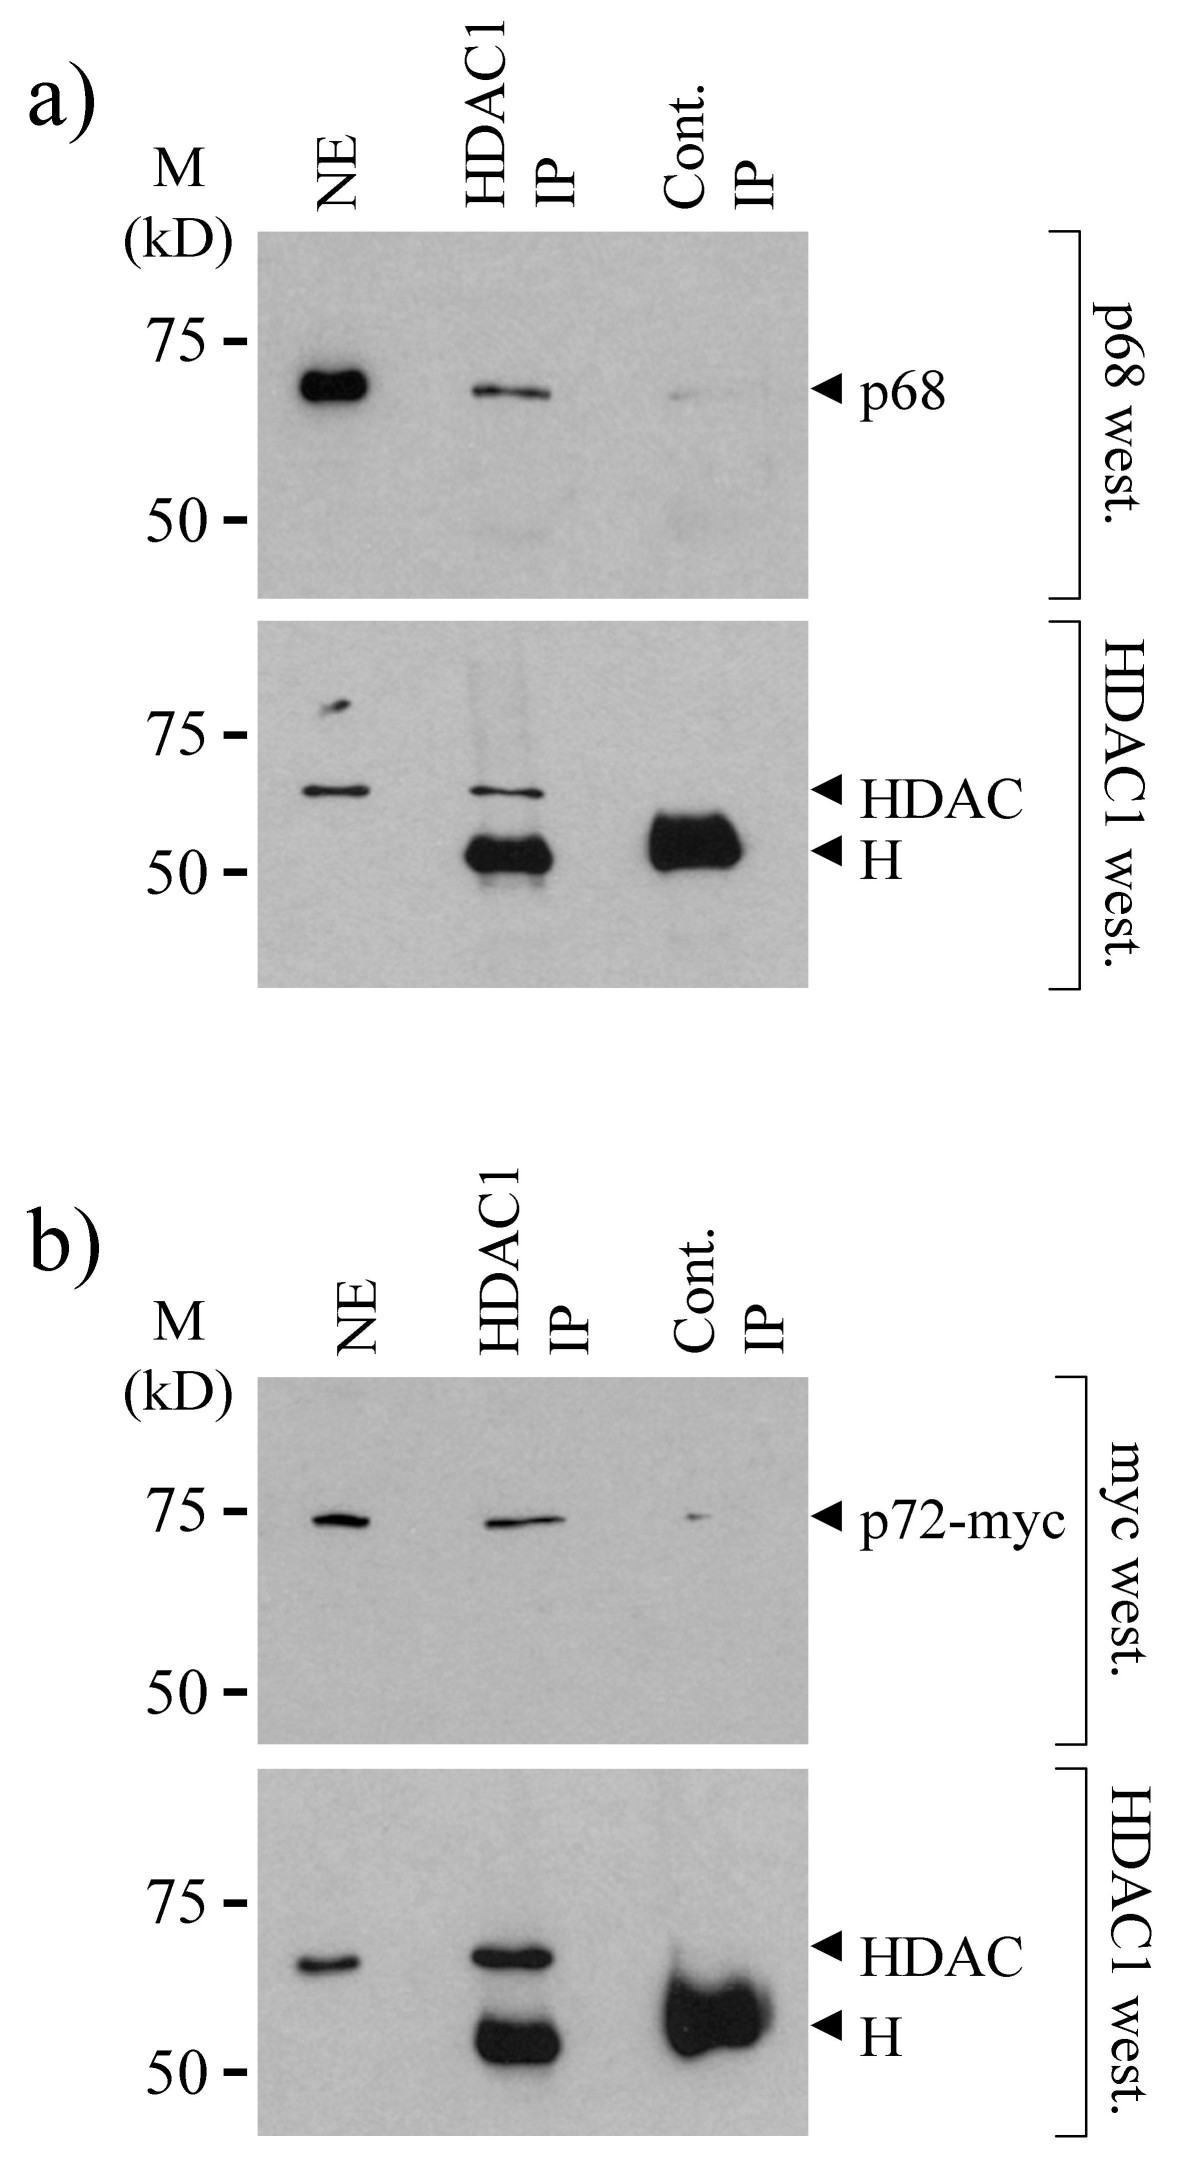 http://static-content.springer.com/image/art%3A10.1186%2F1471-2199-5-11/MediaObjects/12867_2004_Article_56_Fig6_HTML.jpg